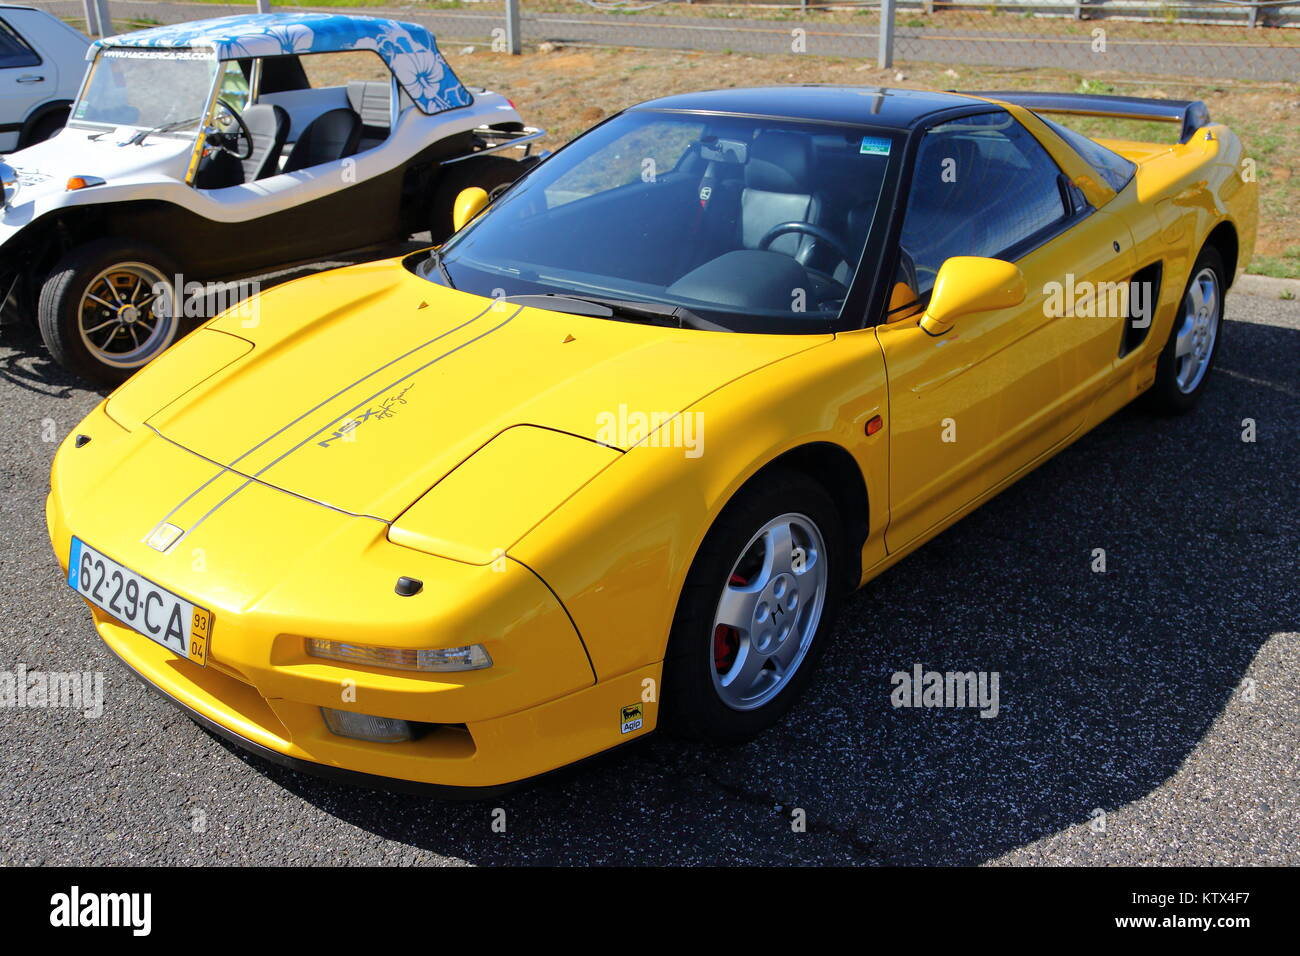 A yellow Honda NSX Sports Car at the Estoril Race Course in Portugal - Stock Image